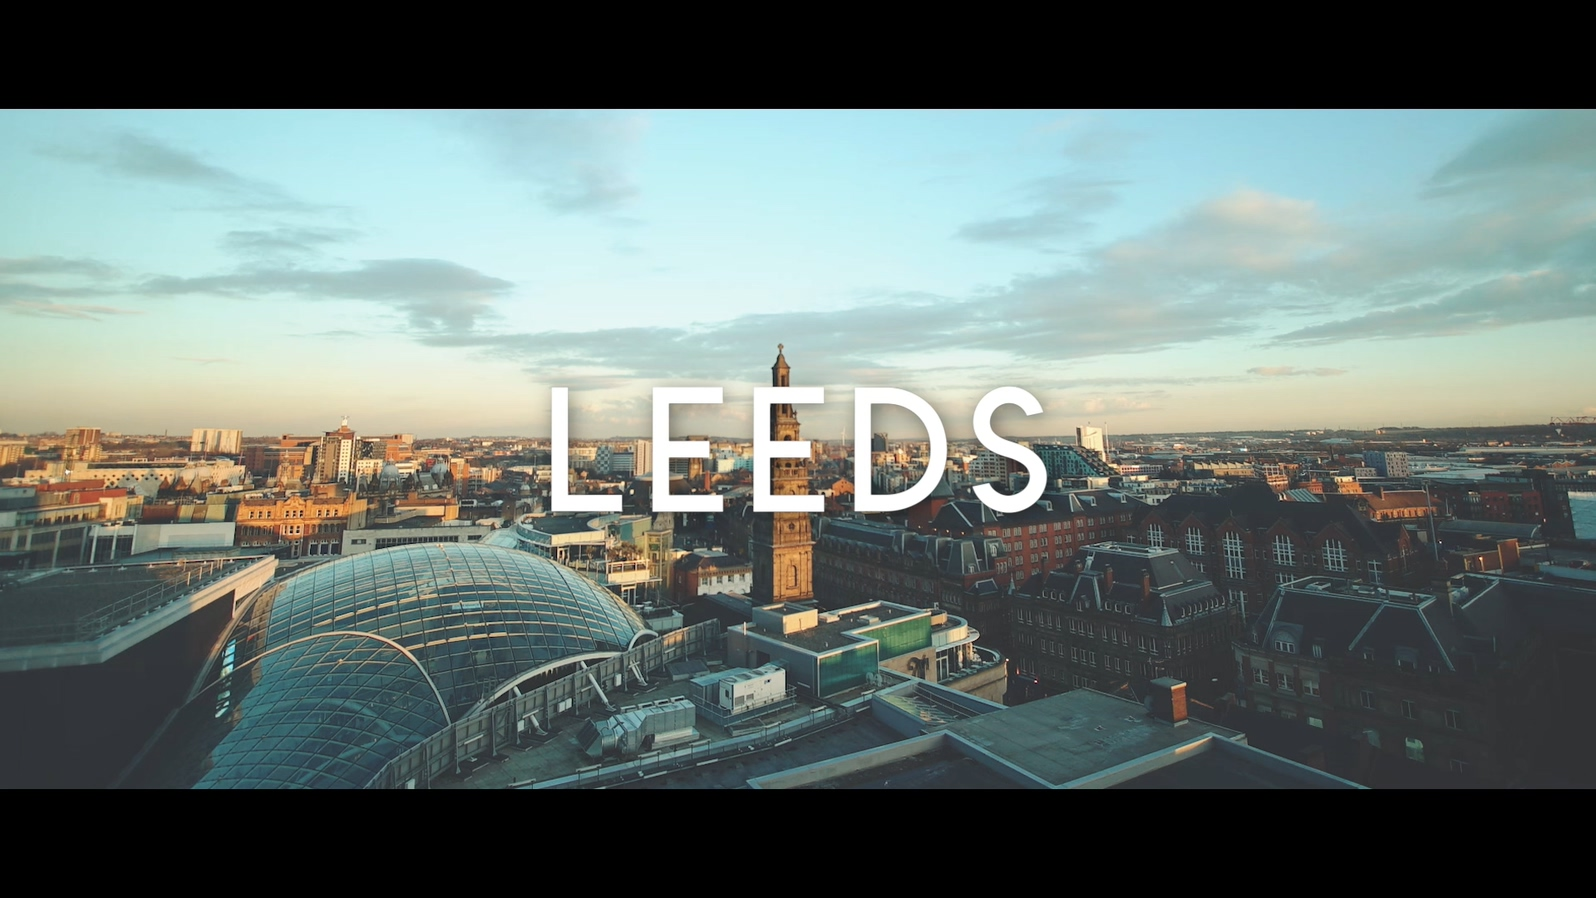 aerial shot of Leeds in the evening